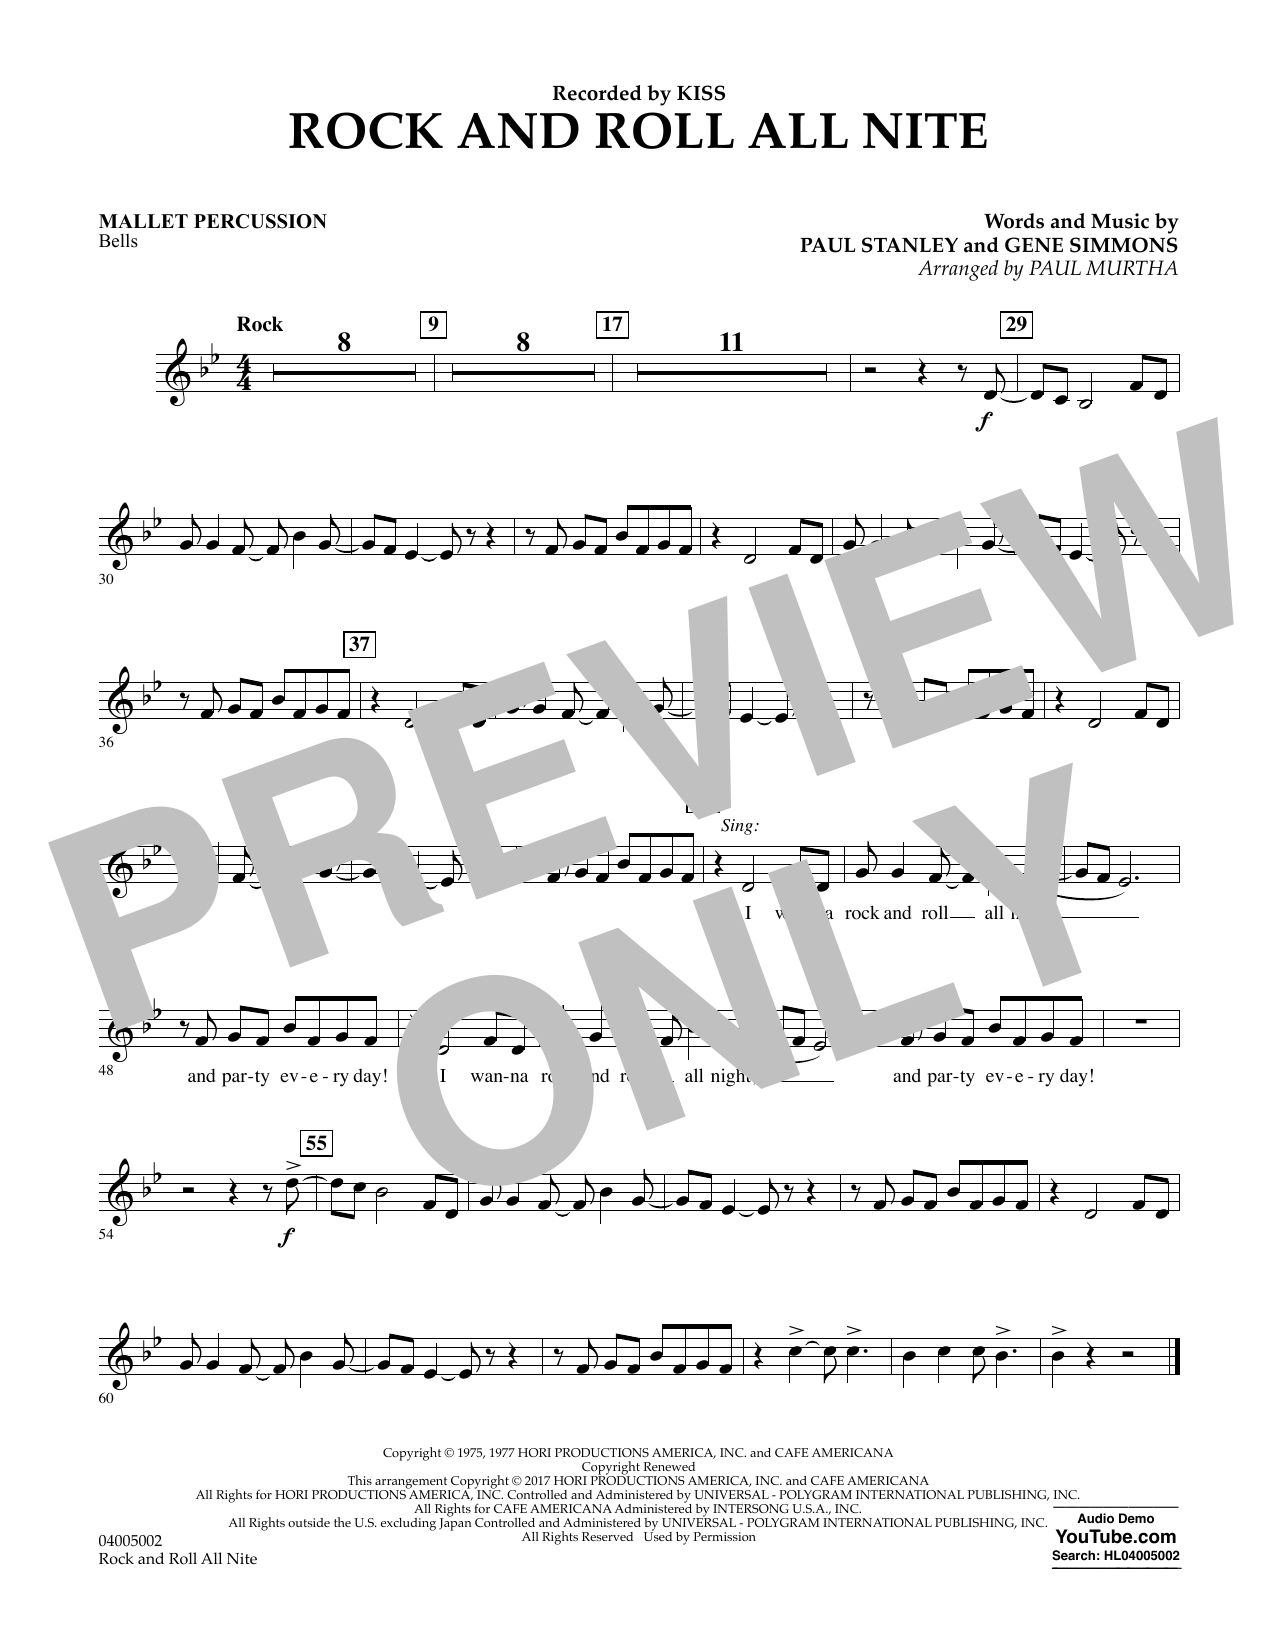 Rock and Roll All Nite - Mallet Percussion Sheet Music